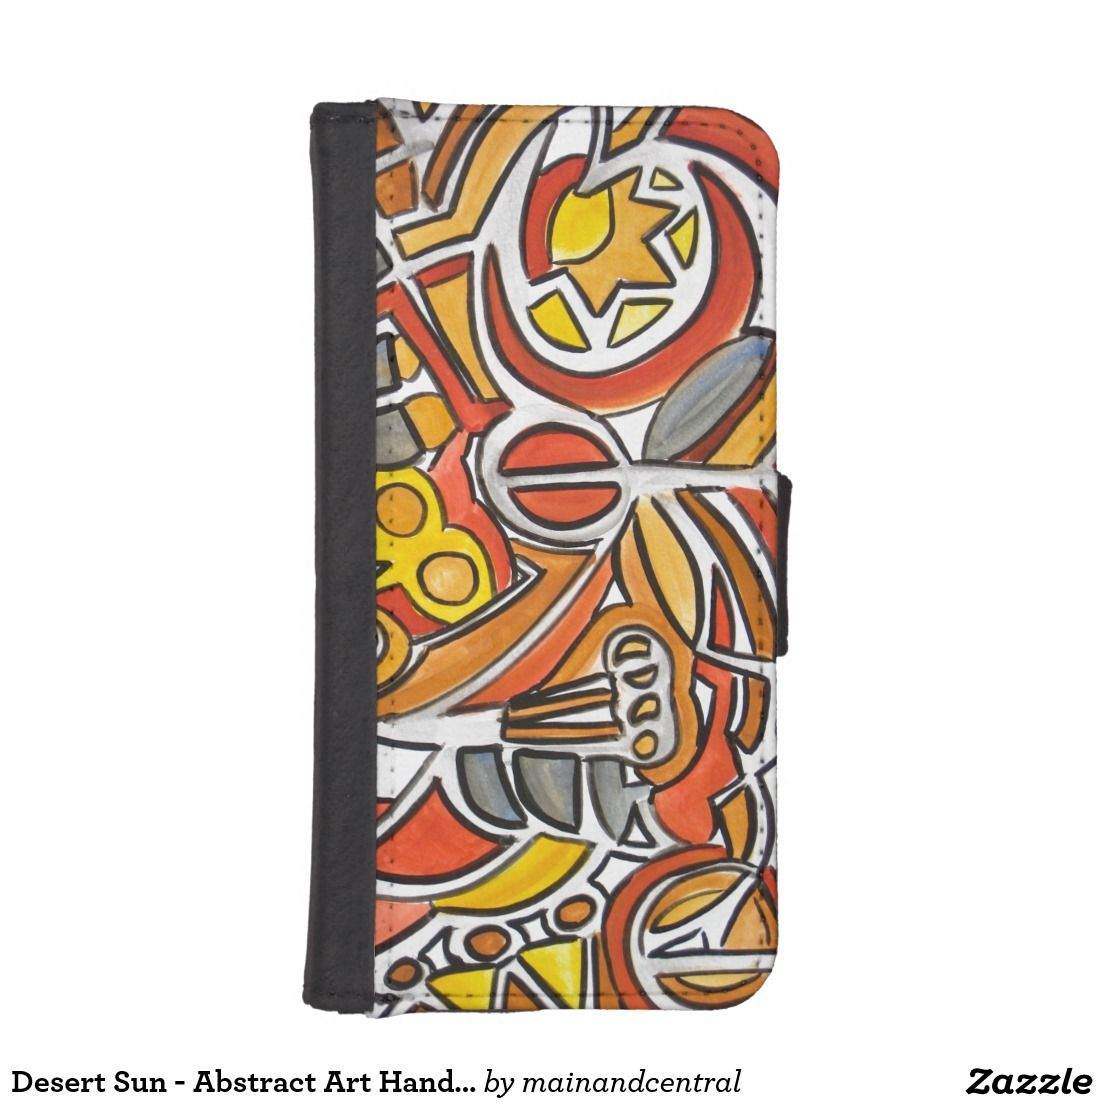 Desert Sun - Phone Wallet Case with Abstract Art Hand Painted Geometric Pattern in Bold Earth Colors